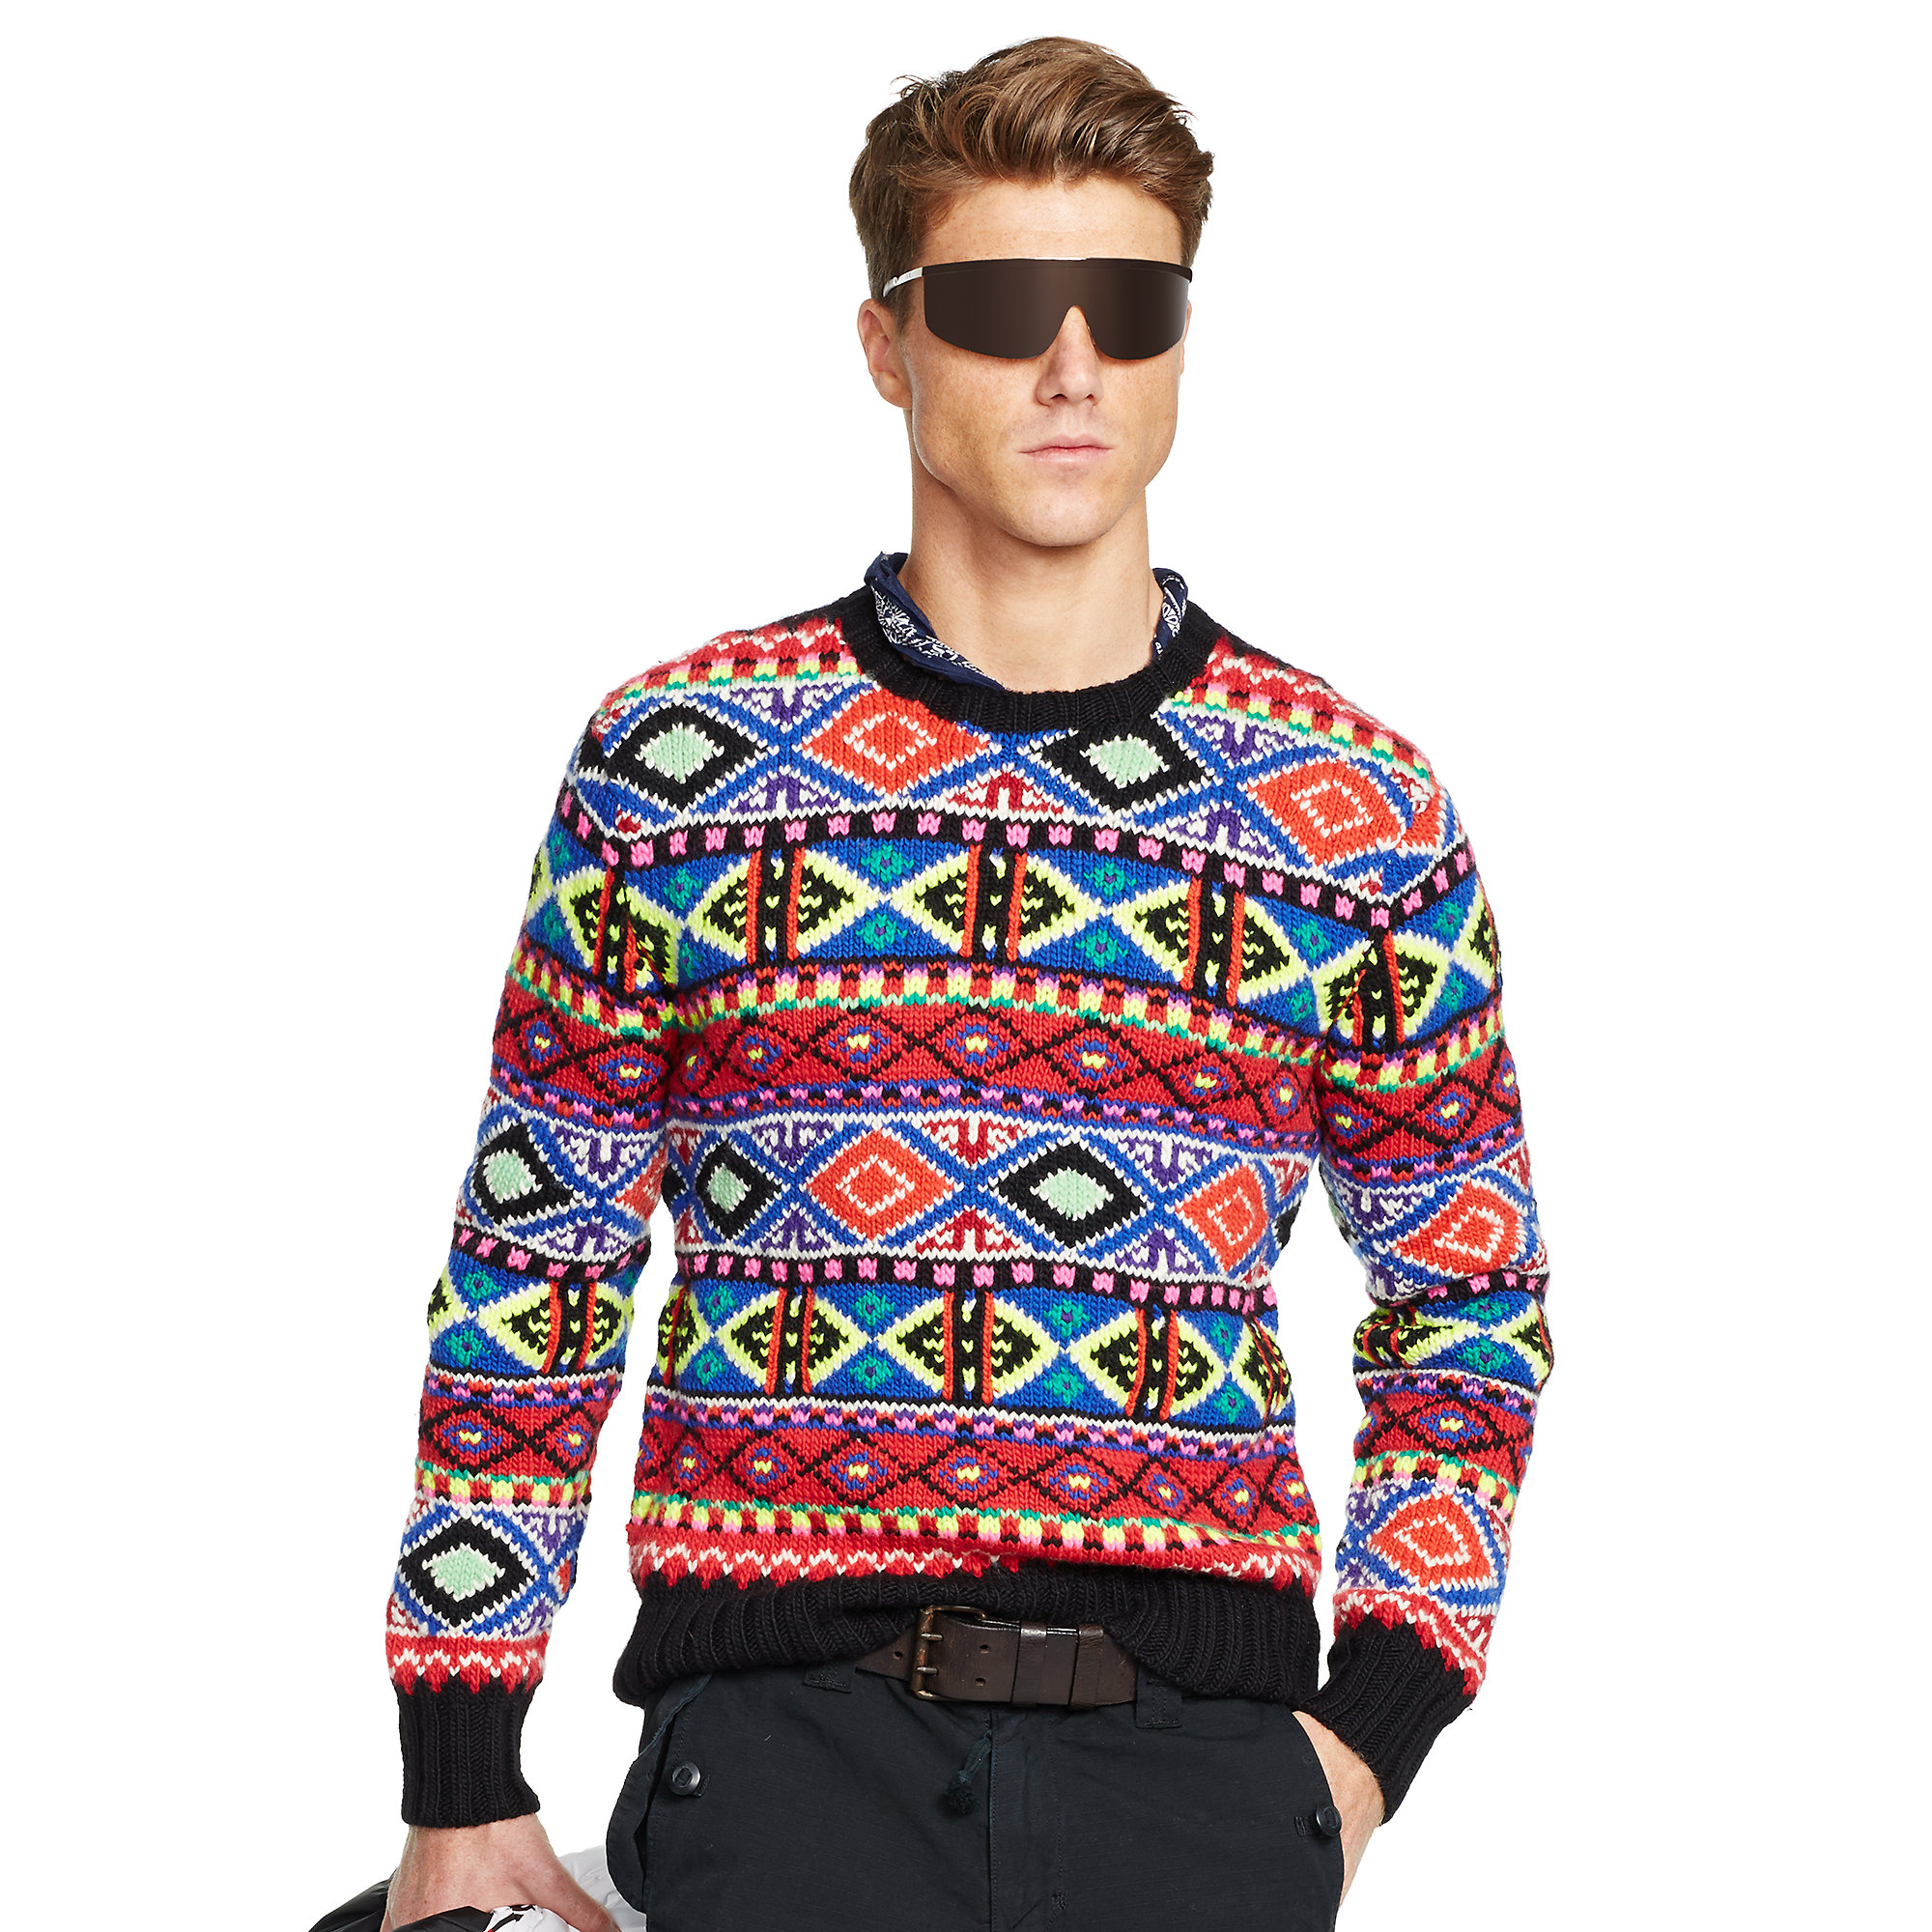 Ralph lauren Neon Fair Isle Sweater | Lyst